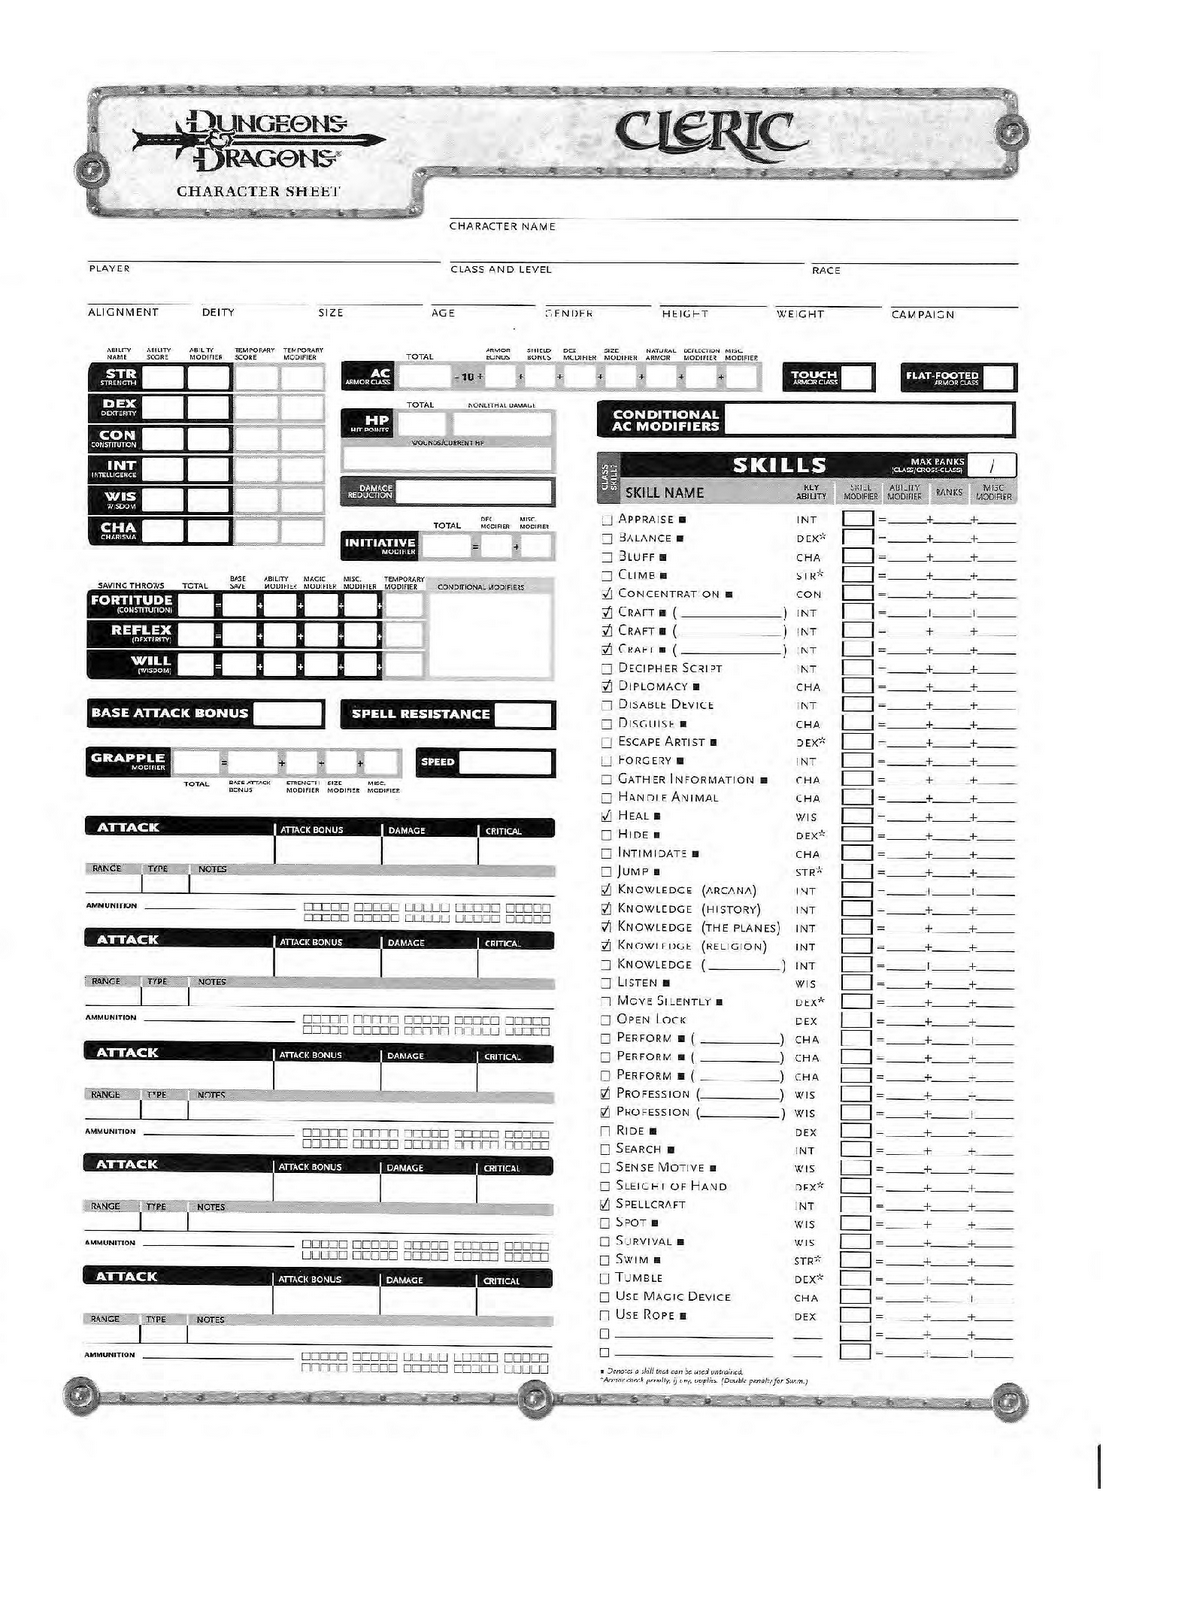 If this is the character sheet you re looking for and you want to